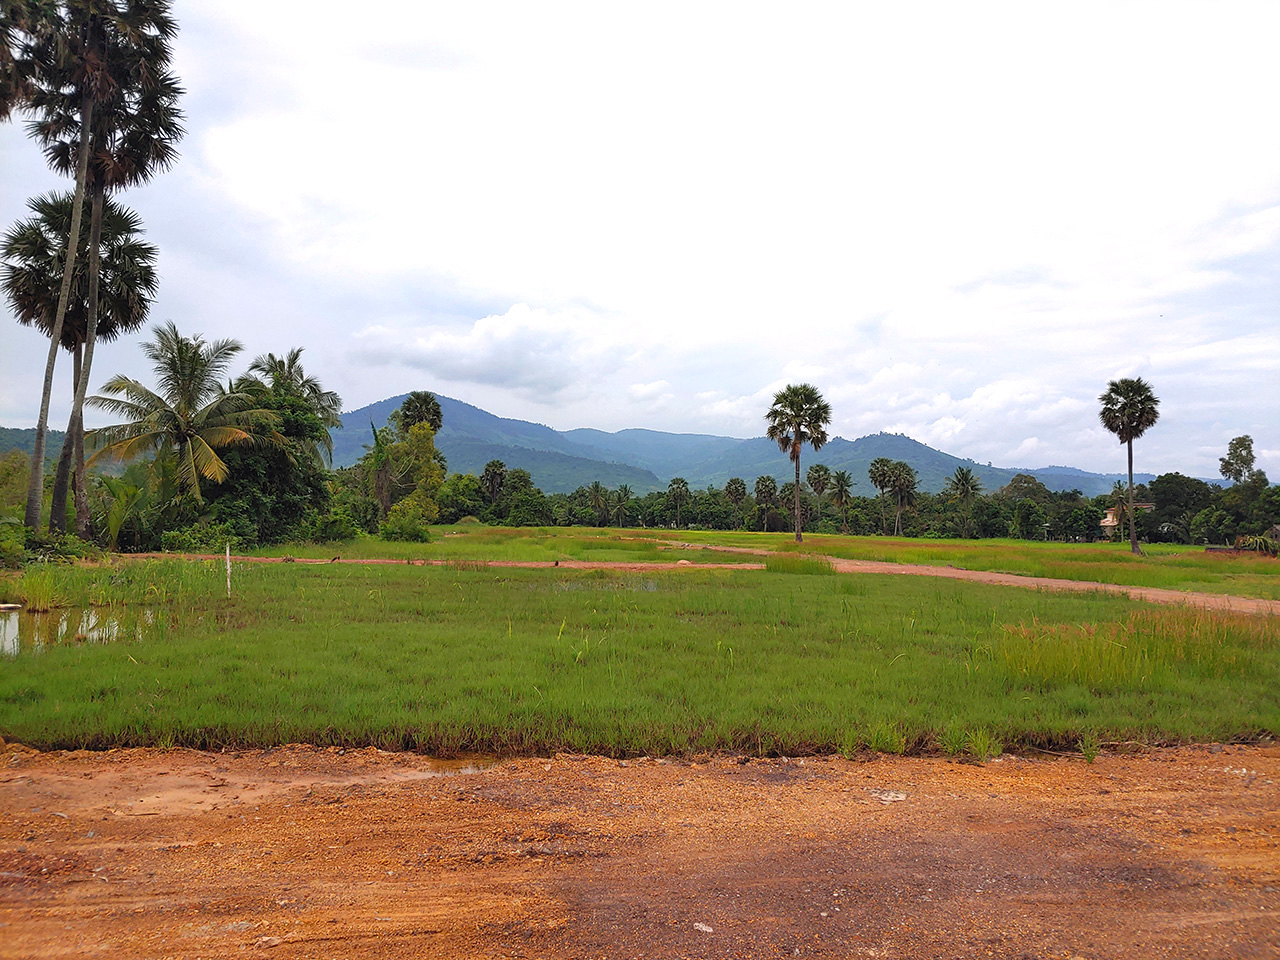 15449 Sq,m land next to stream for sale @ Kampot Province